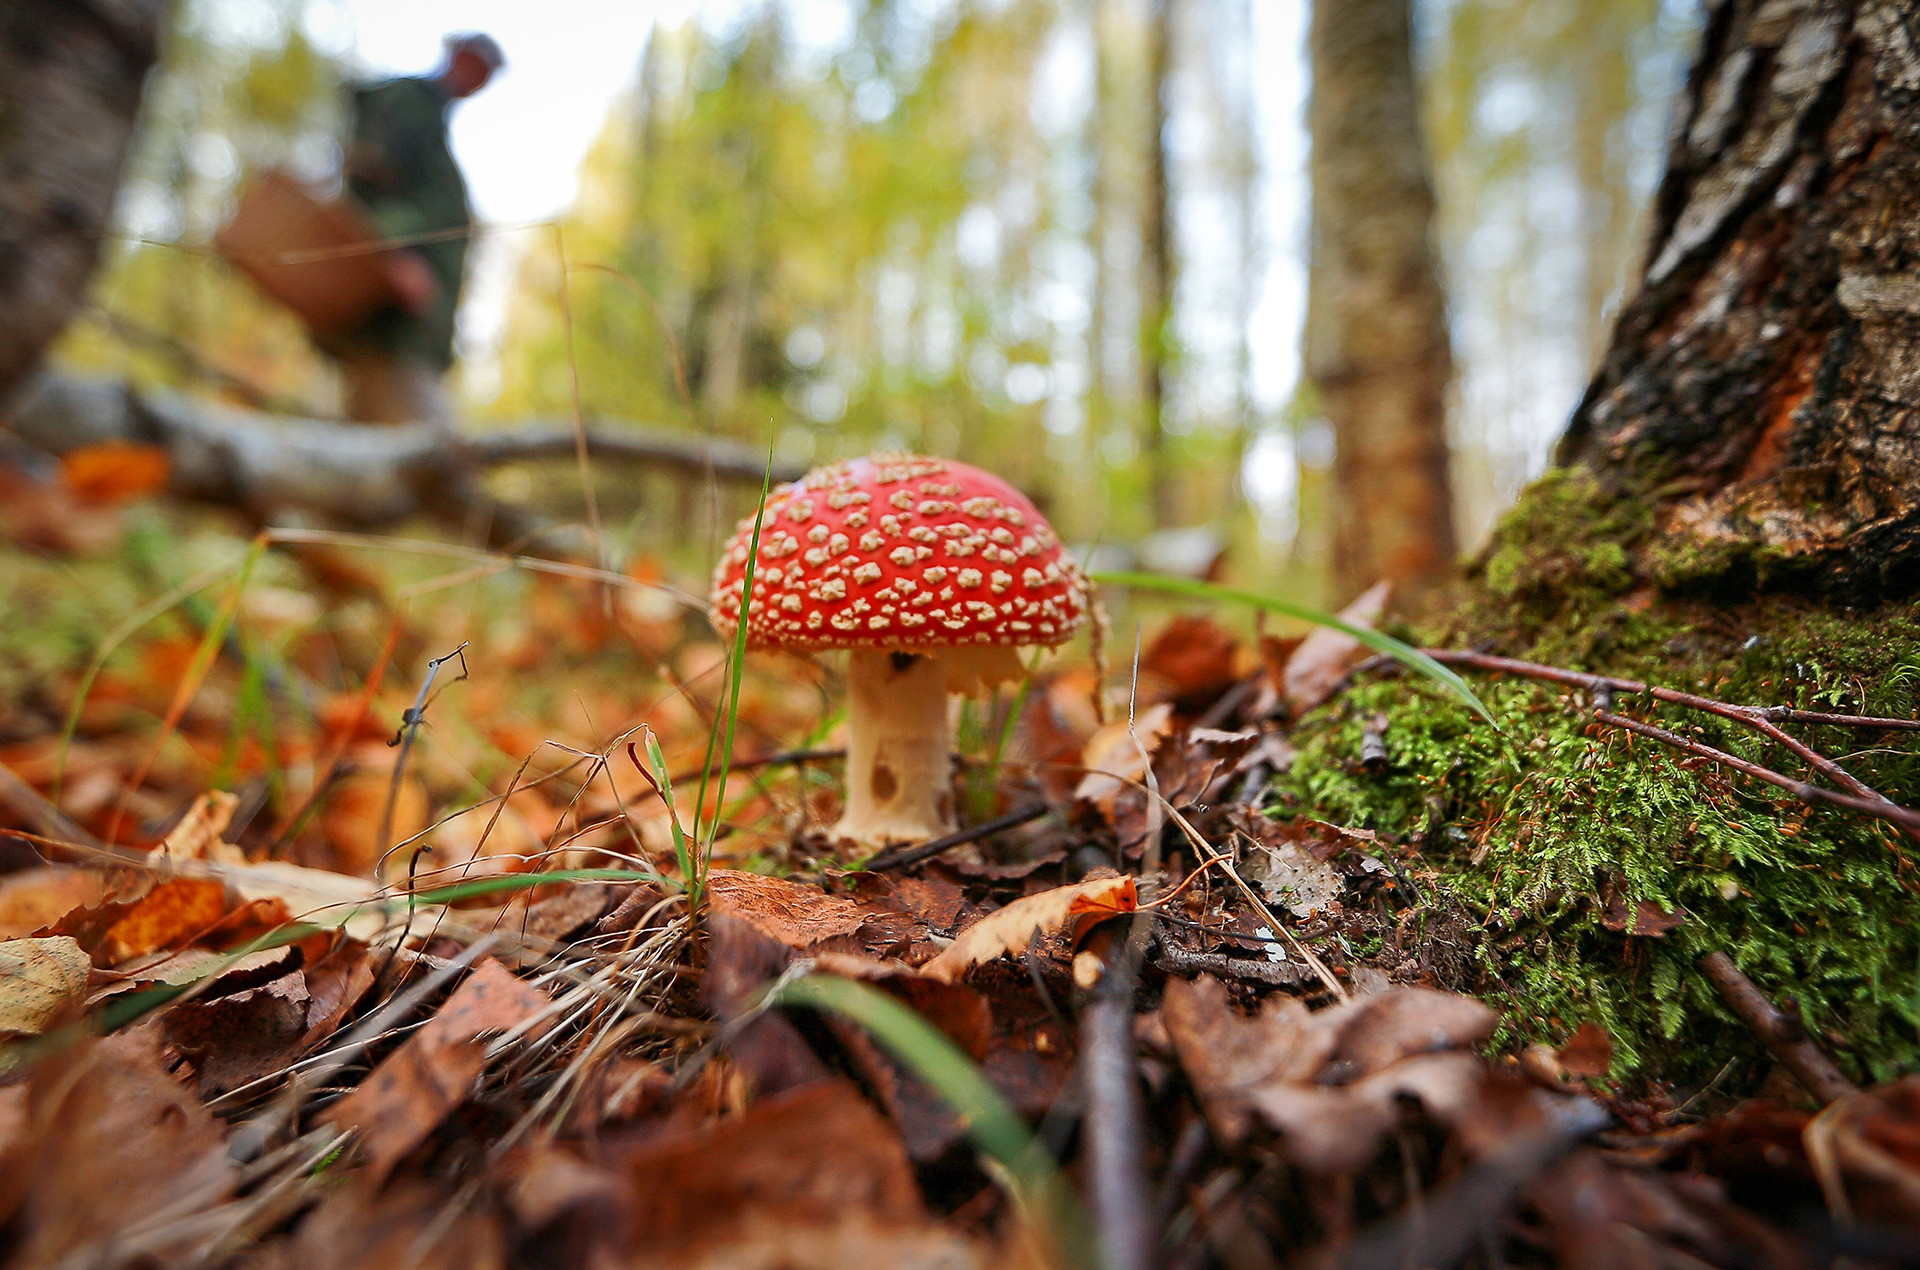 Fly agaric, one of the most poisonous kinds of mushrooms in Russia. Do not eat it!